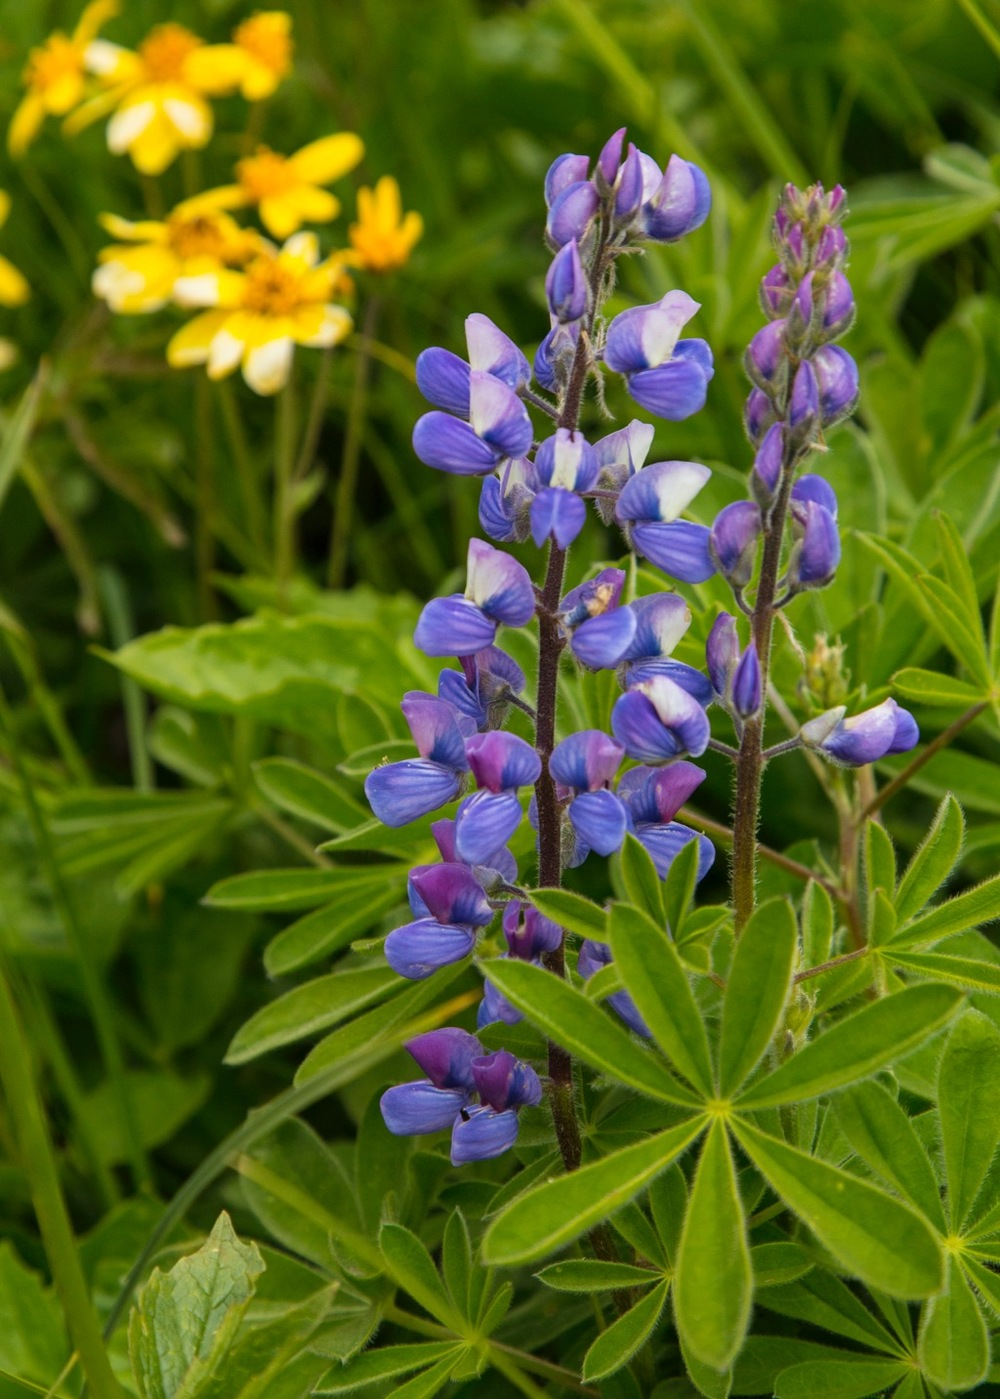 The purple ones are lupin - that much I know!